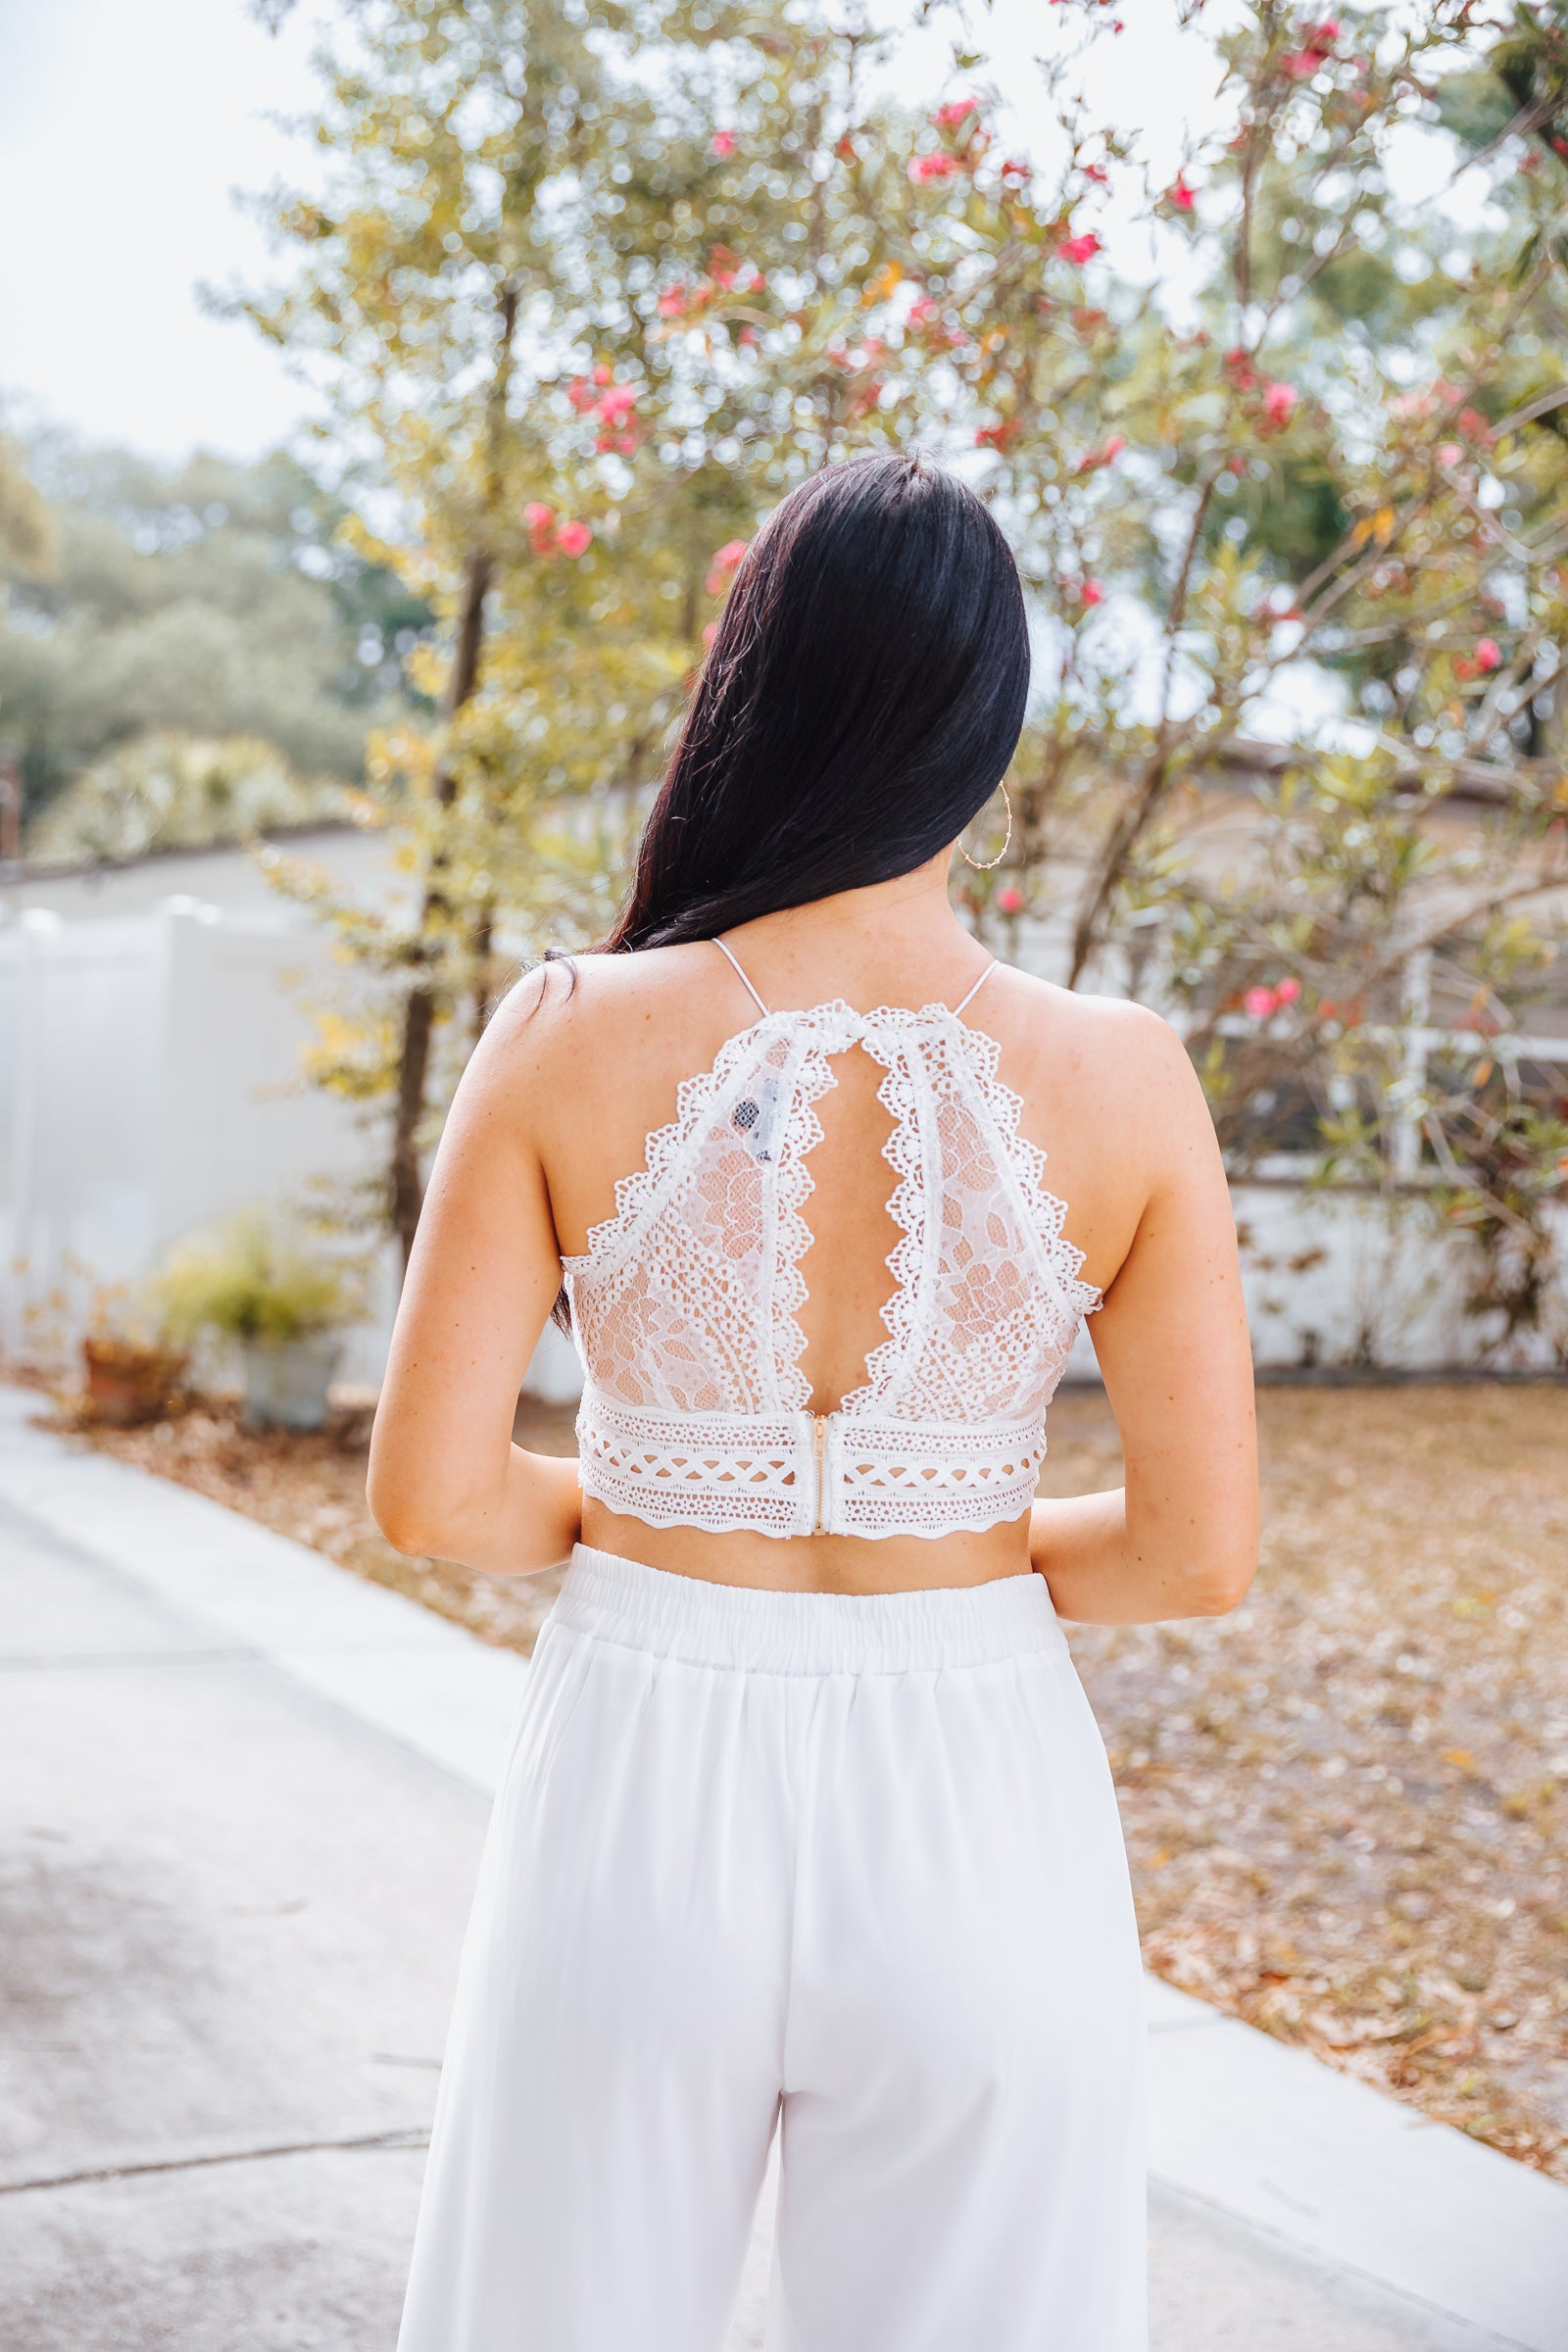 Thin bungee straps attach to a high laced-trim neckline on a cropped bodice with crochet-centered detail meeting with laced panels, has a crochet waistband and a keyhole opening on the back.